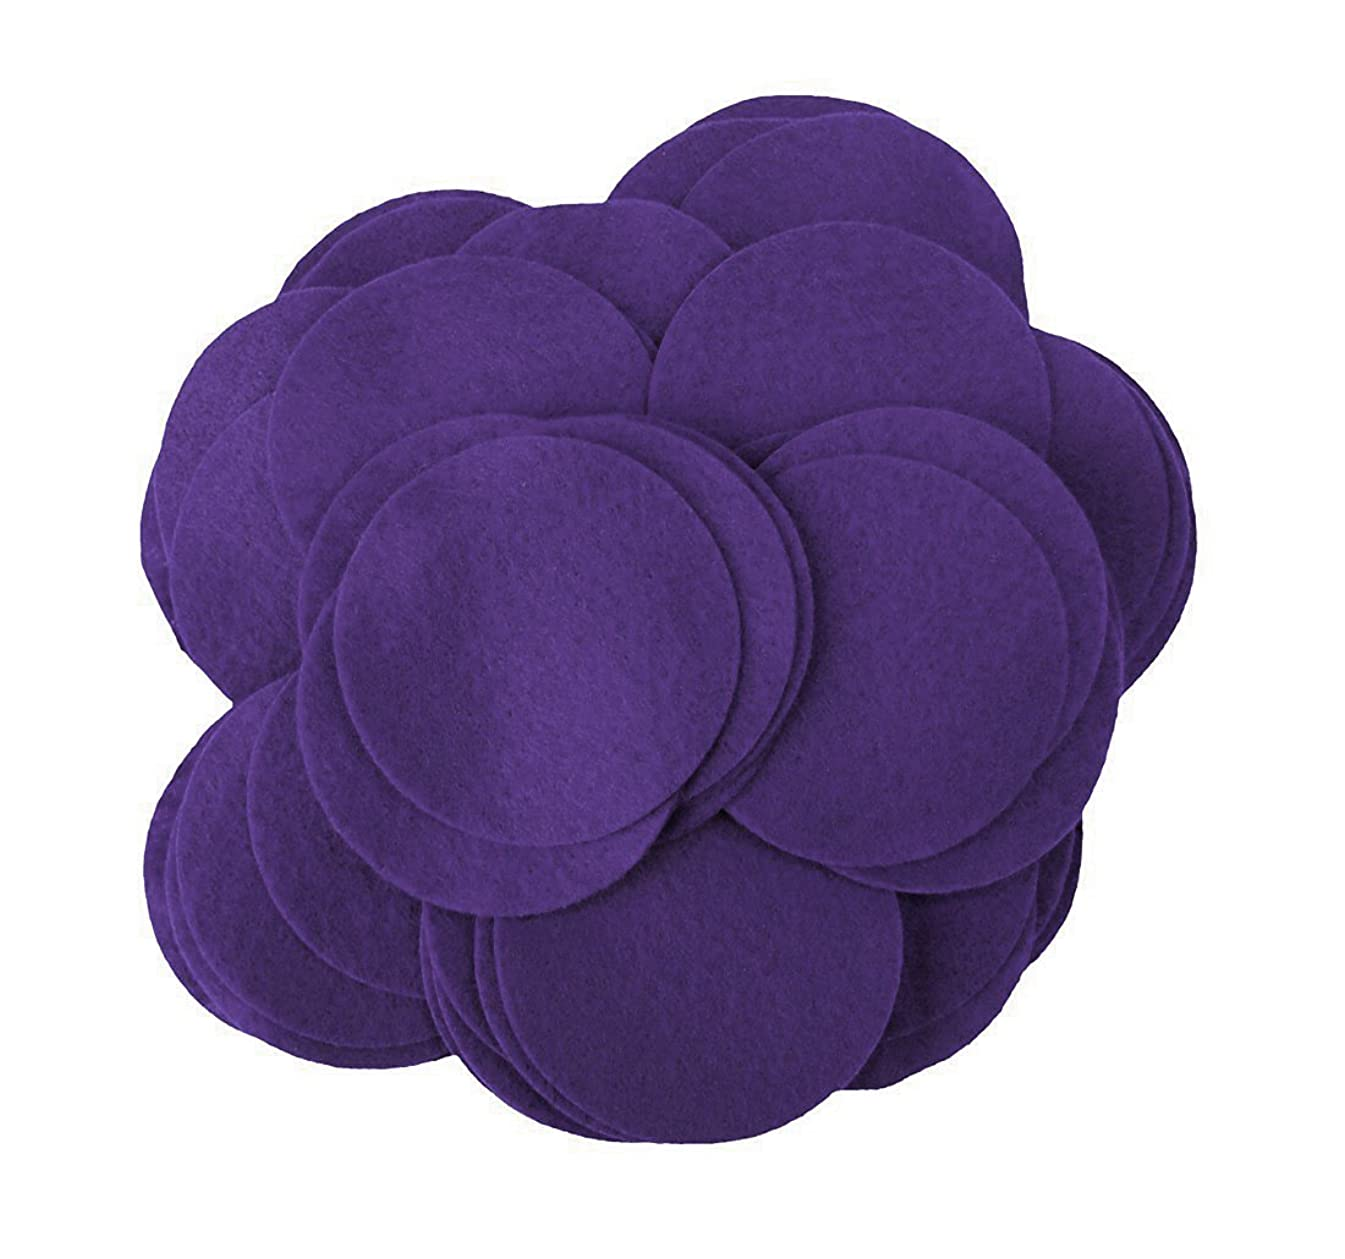 Playfully Ever After 3 Inch Dark Purple 30pc Felt Circles sampvysju3976255